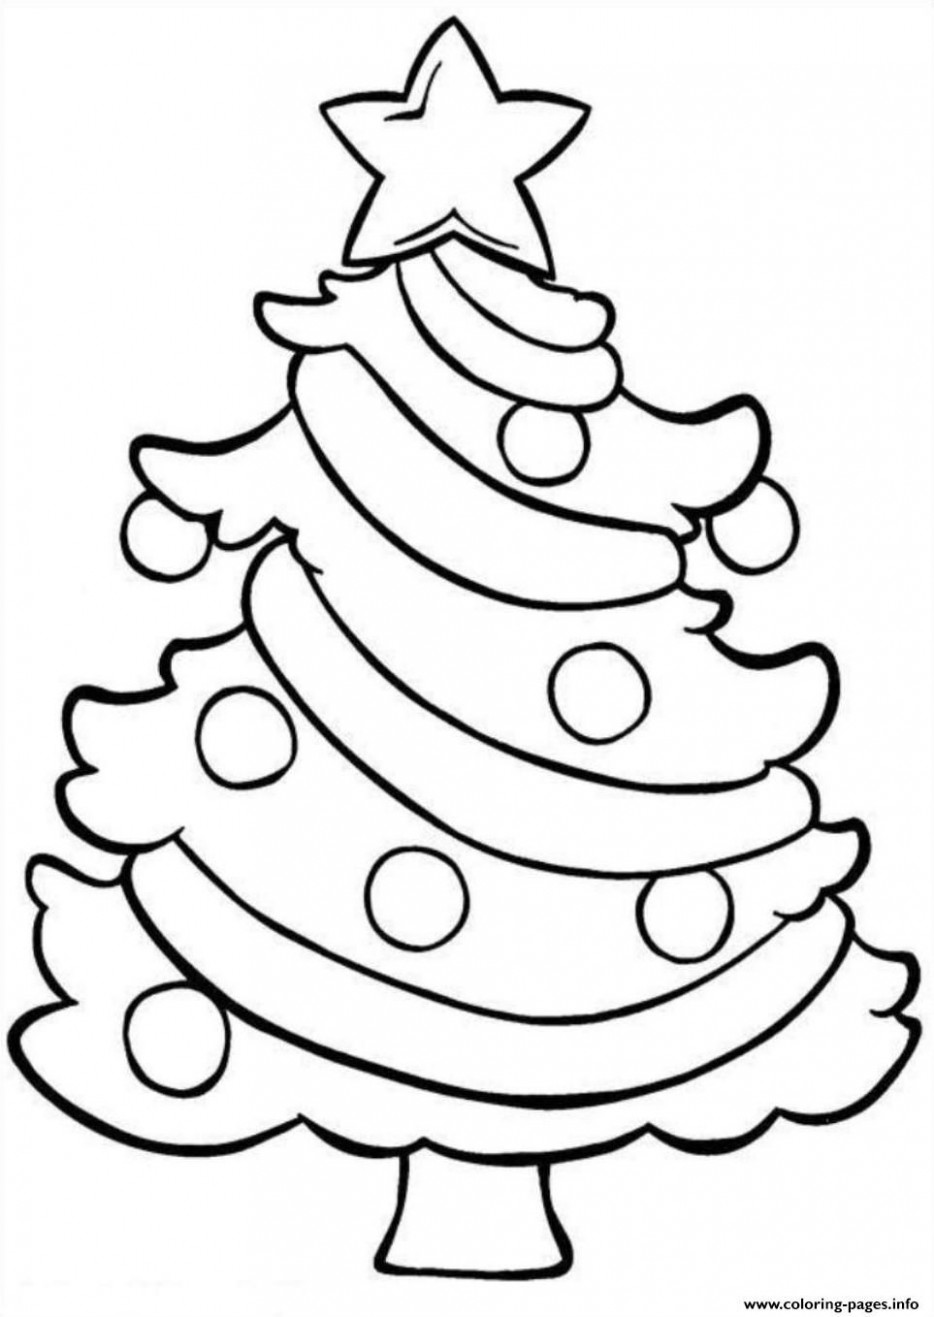 Print coloring pages christmas tree easy e12f12df coloring ..